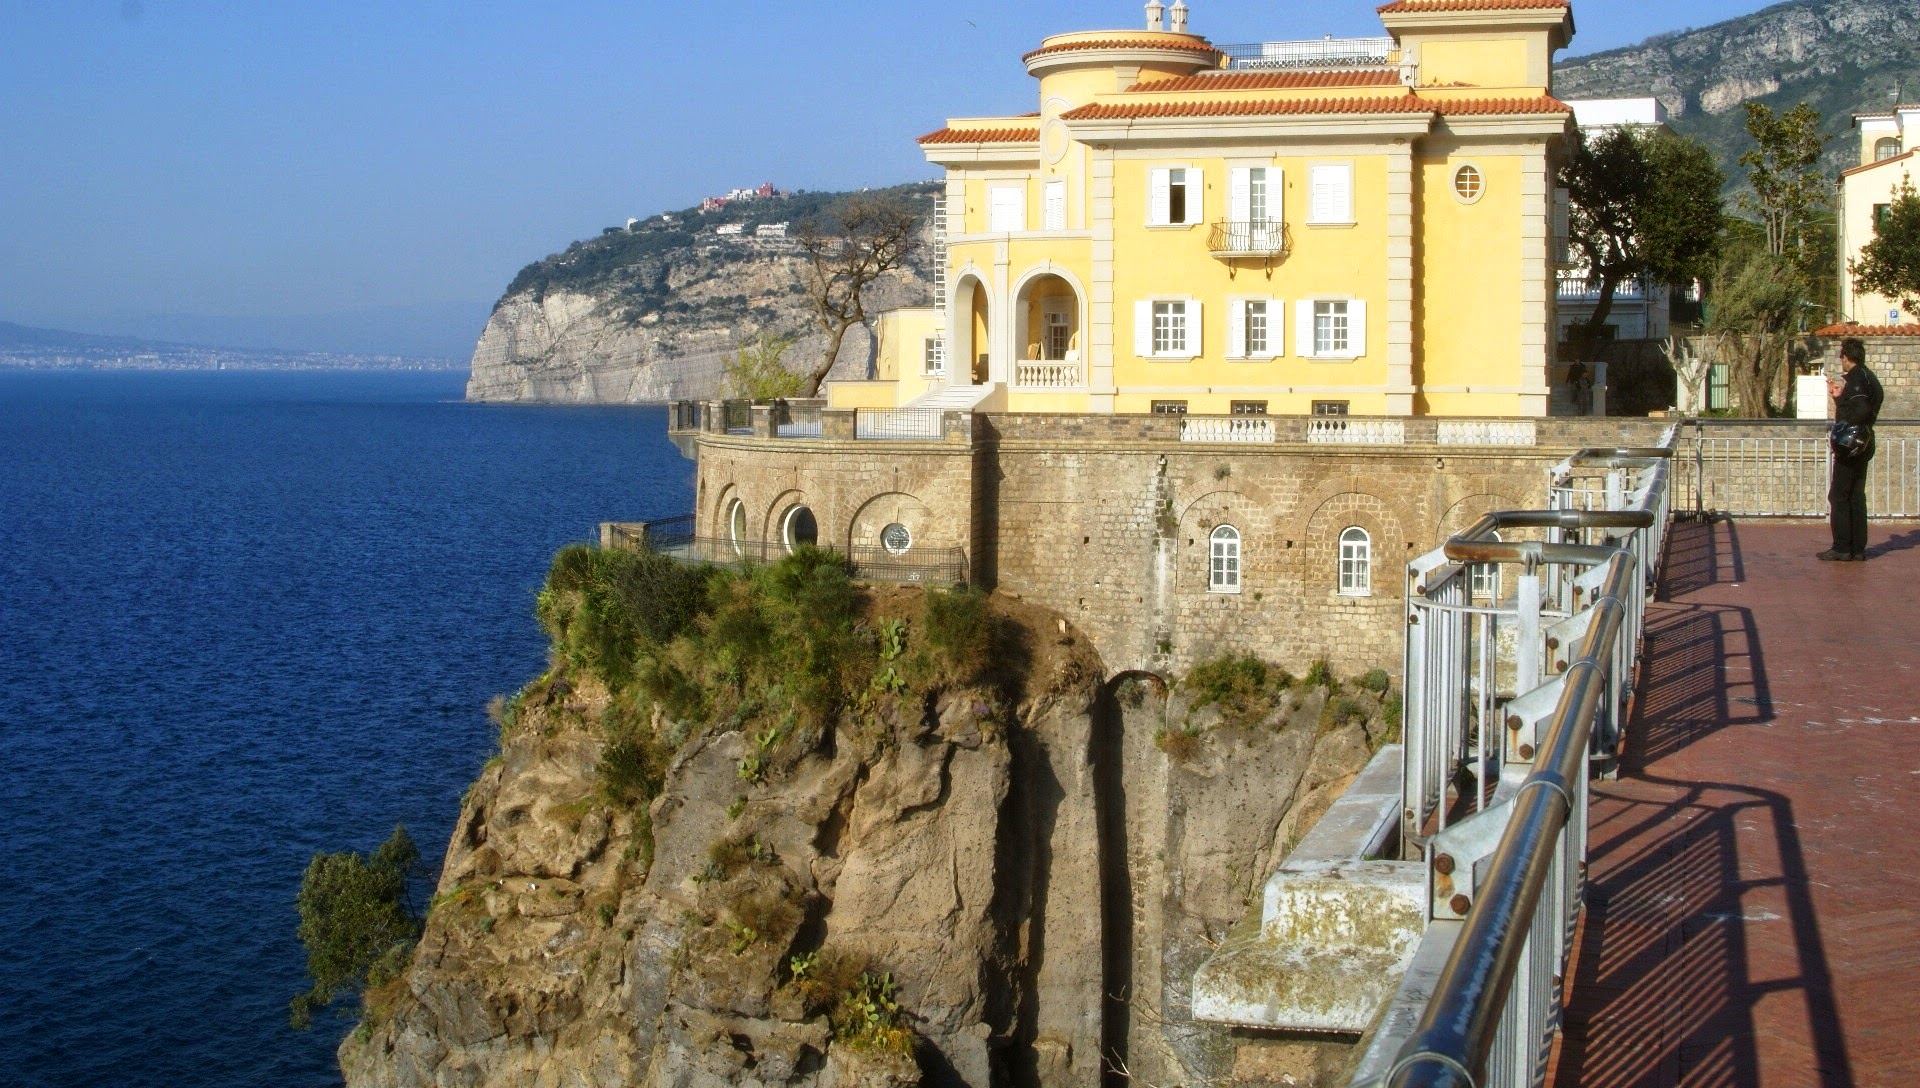 Sorrento, Italy was part of our 2012 adventure by ouritalianjourney.com